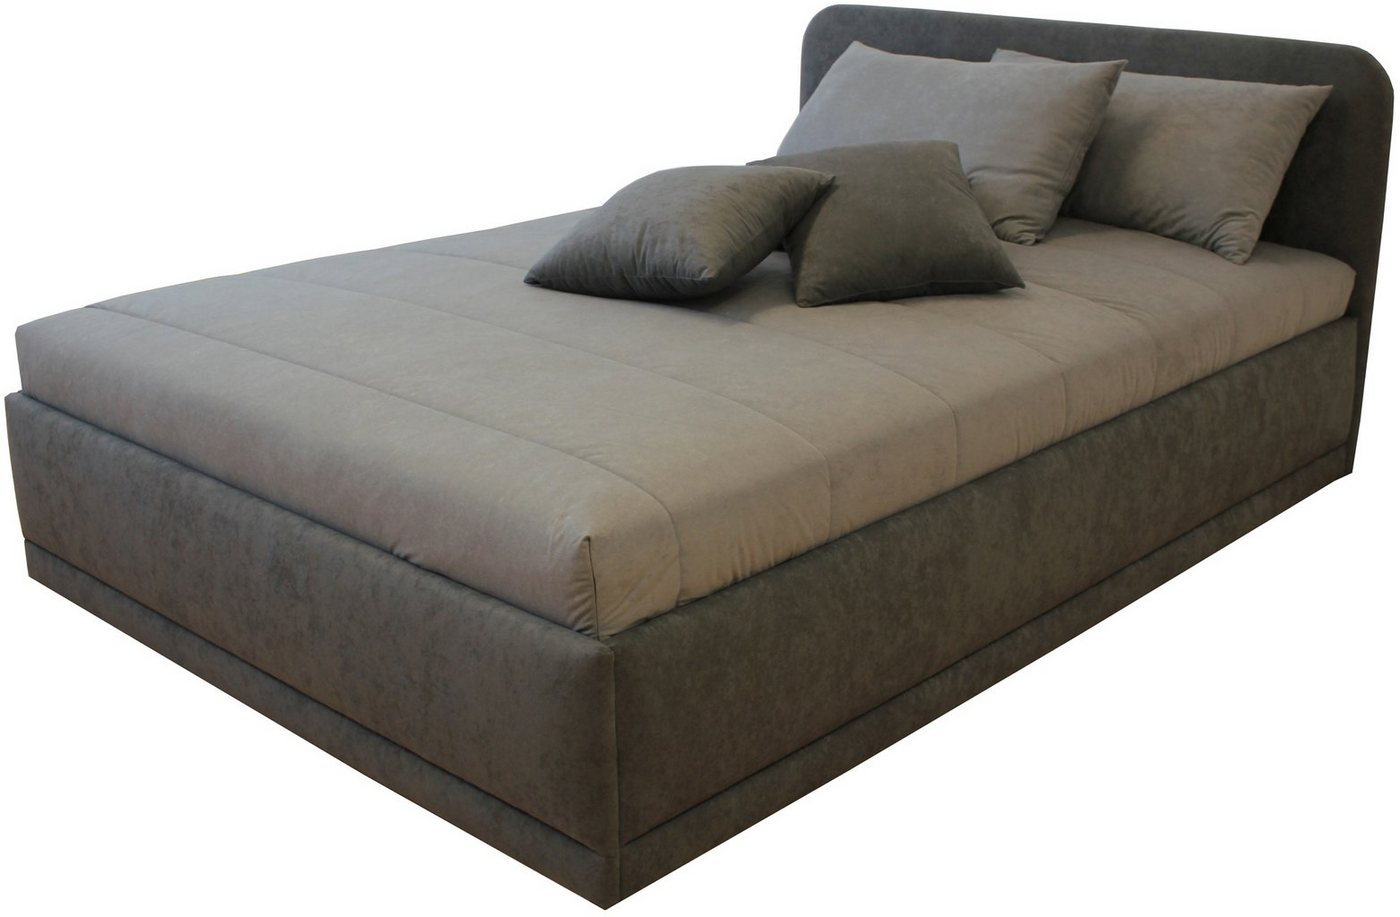 Bed met micro-velours